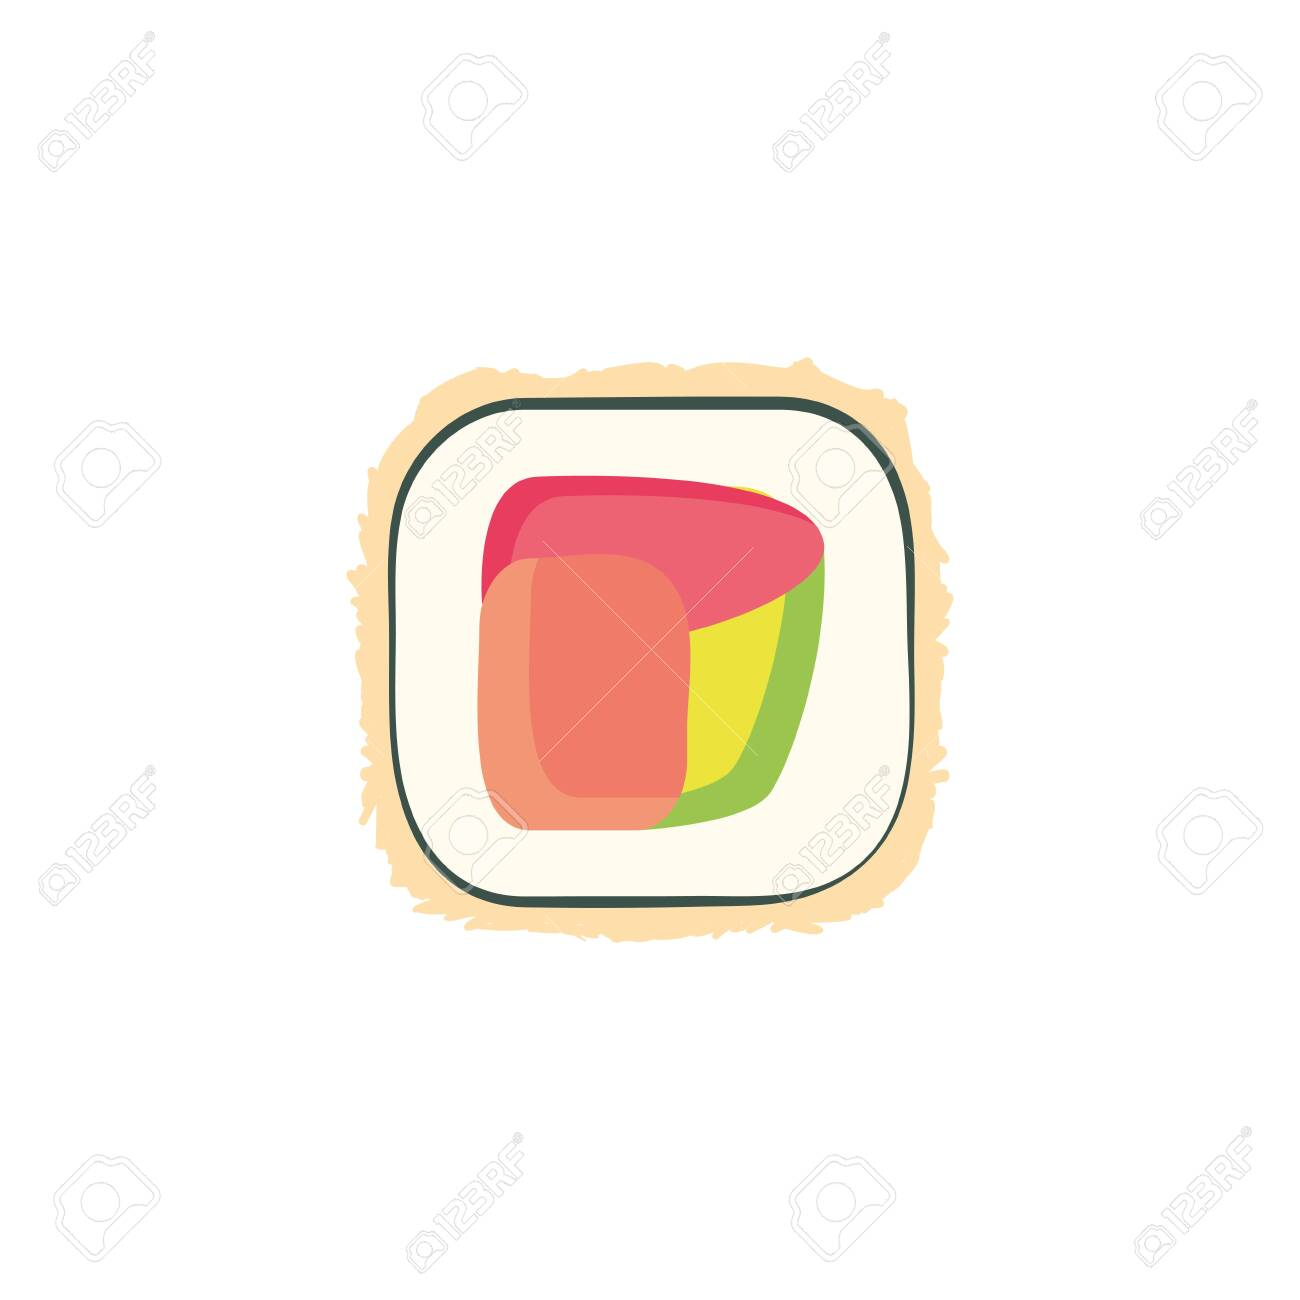 sushi icon design, Eat food restaurant menu dinner lunch cooking and meal theme Vector illustration - 133064874